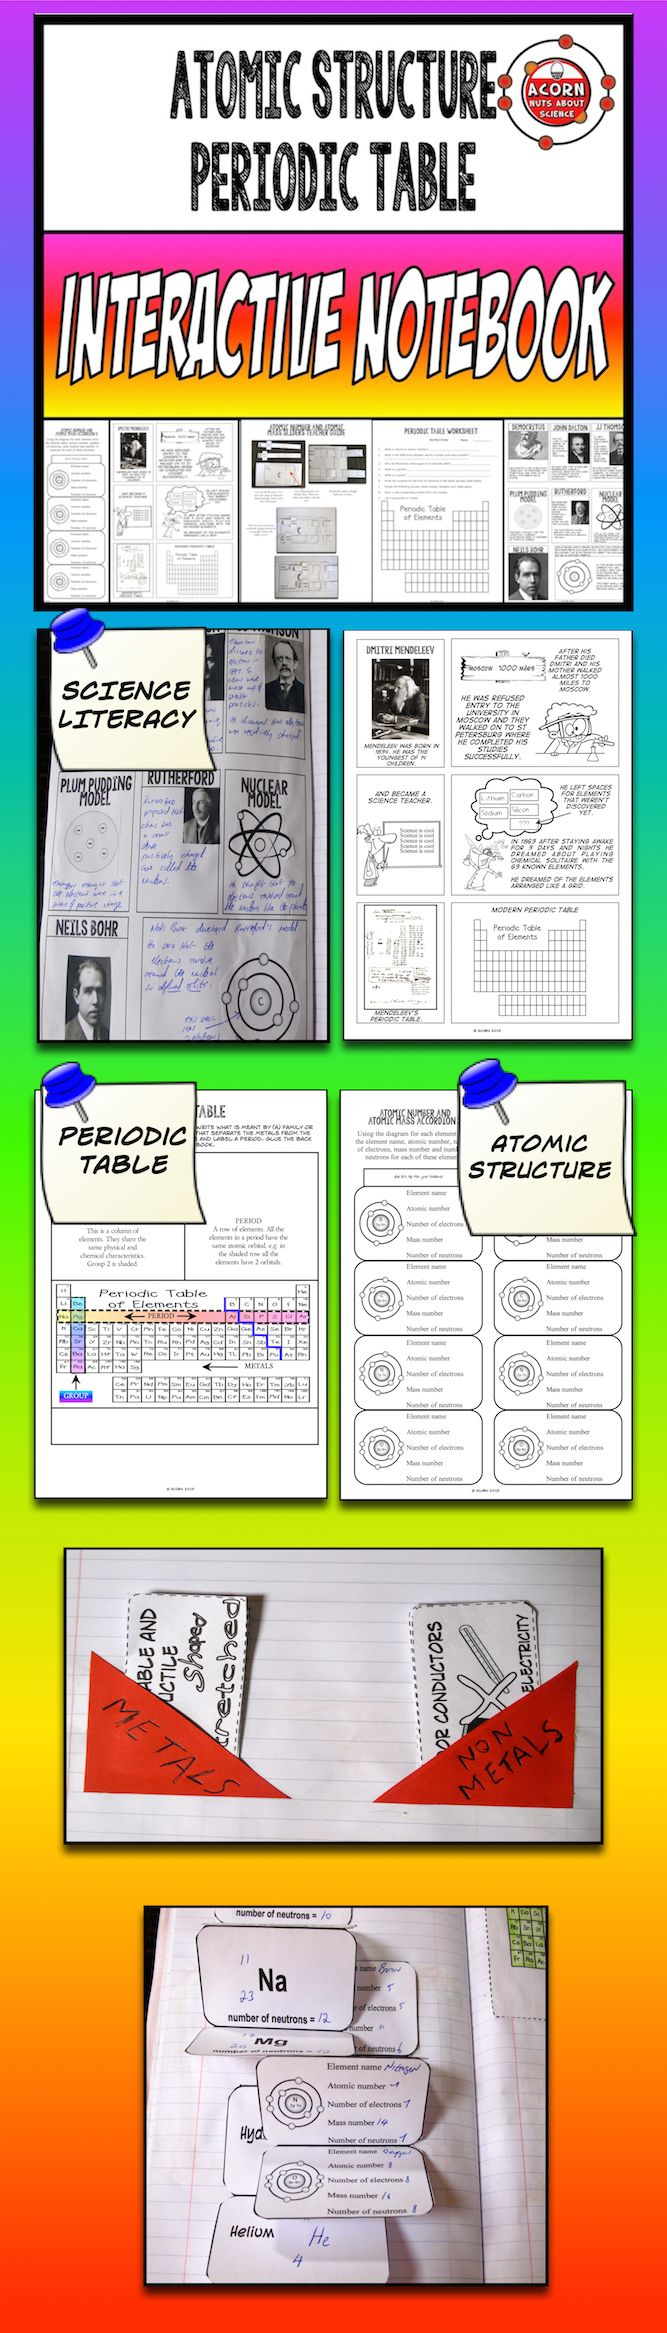 Atom structure periodic table interactive notebook periodic atom structure periodic table interactive notebook gamestrikefo Images